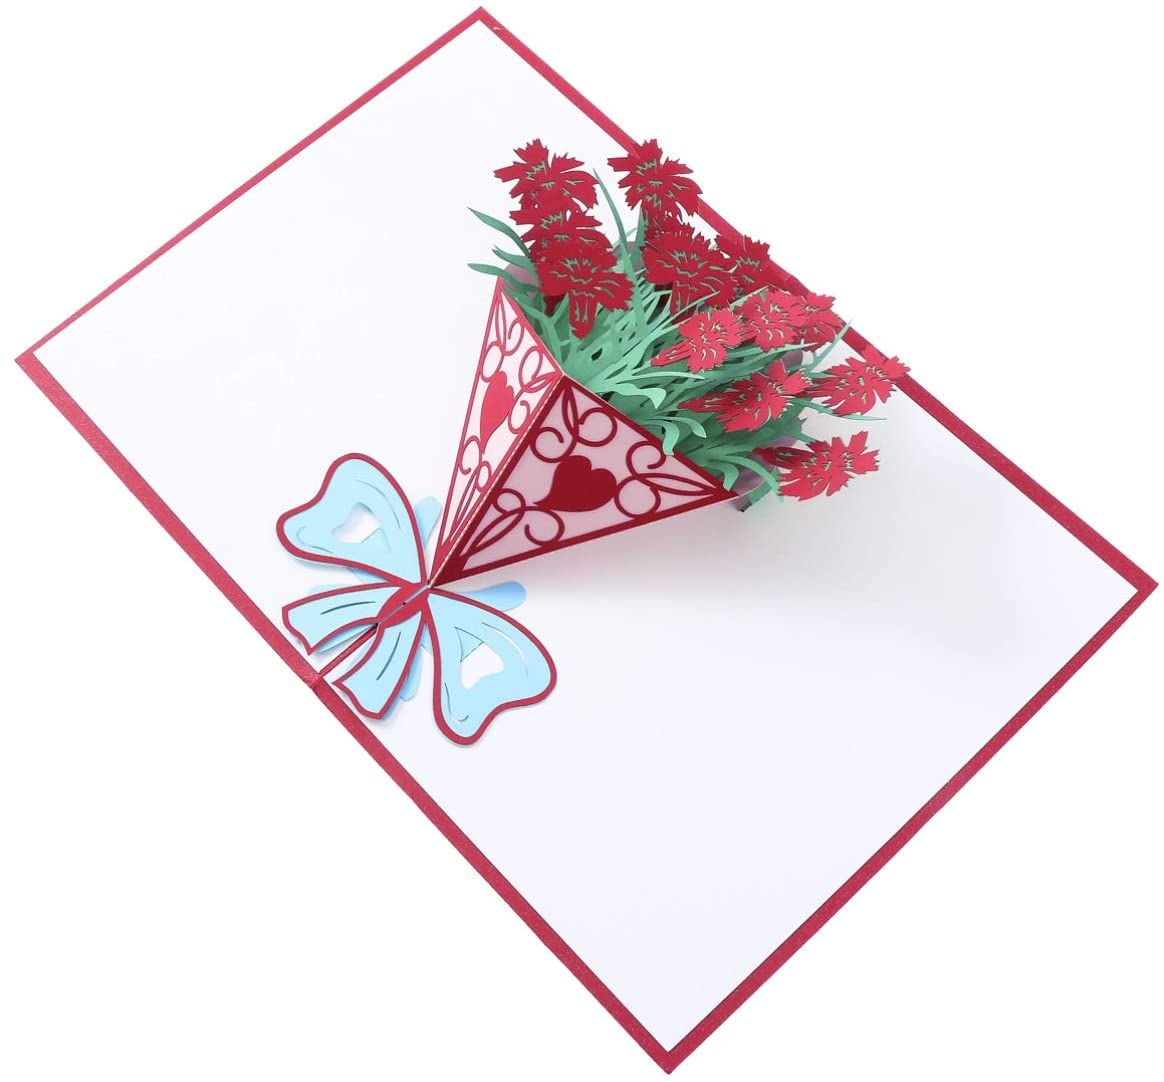 Amosfun 3D Christmas Greeting Cards with Flower Patterns Holiday Pop Up Cards with Envelope Christmas Cards for Xmas Holiday Thanksgiving Party Gifts (Red)